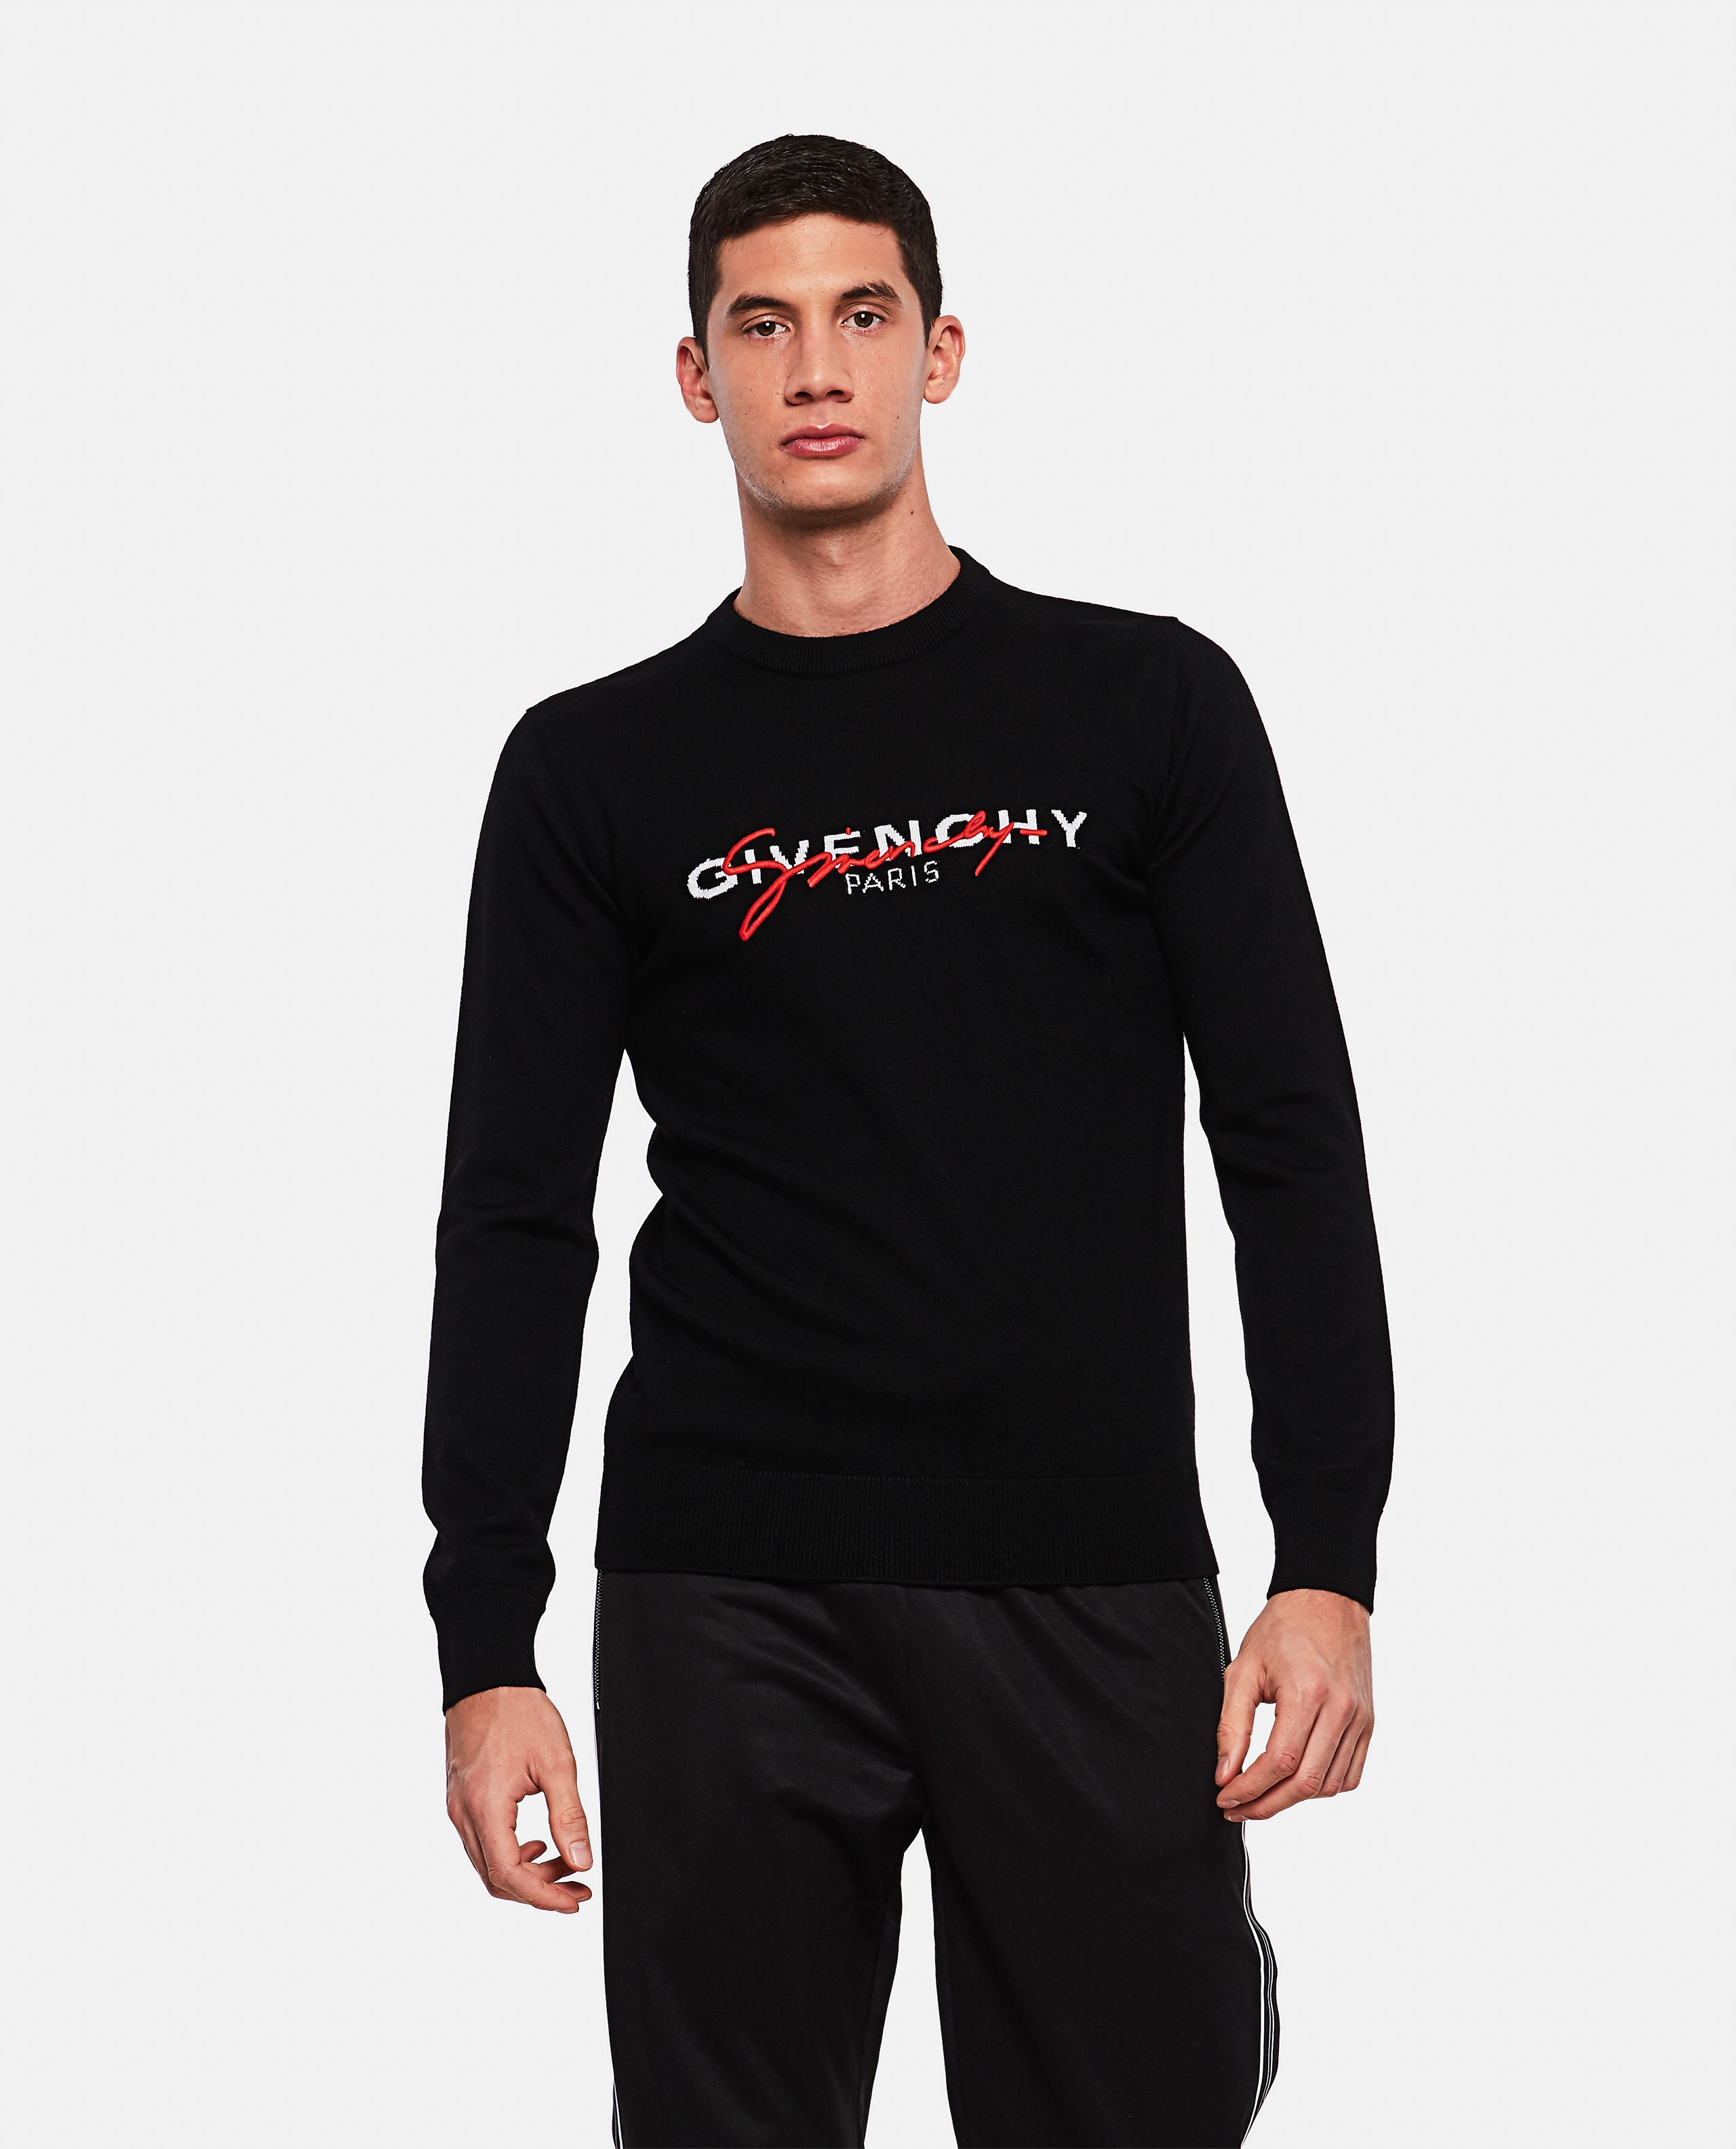 Jersey pullover Men Givenchy 000196770033492 1